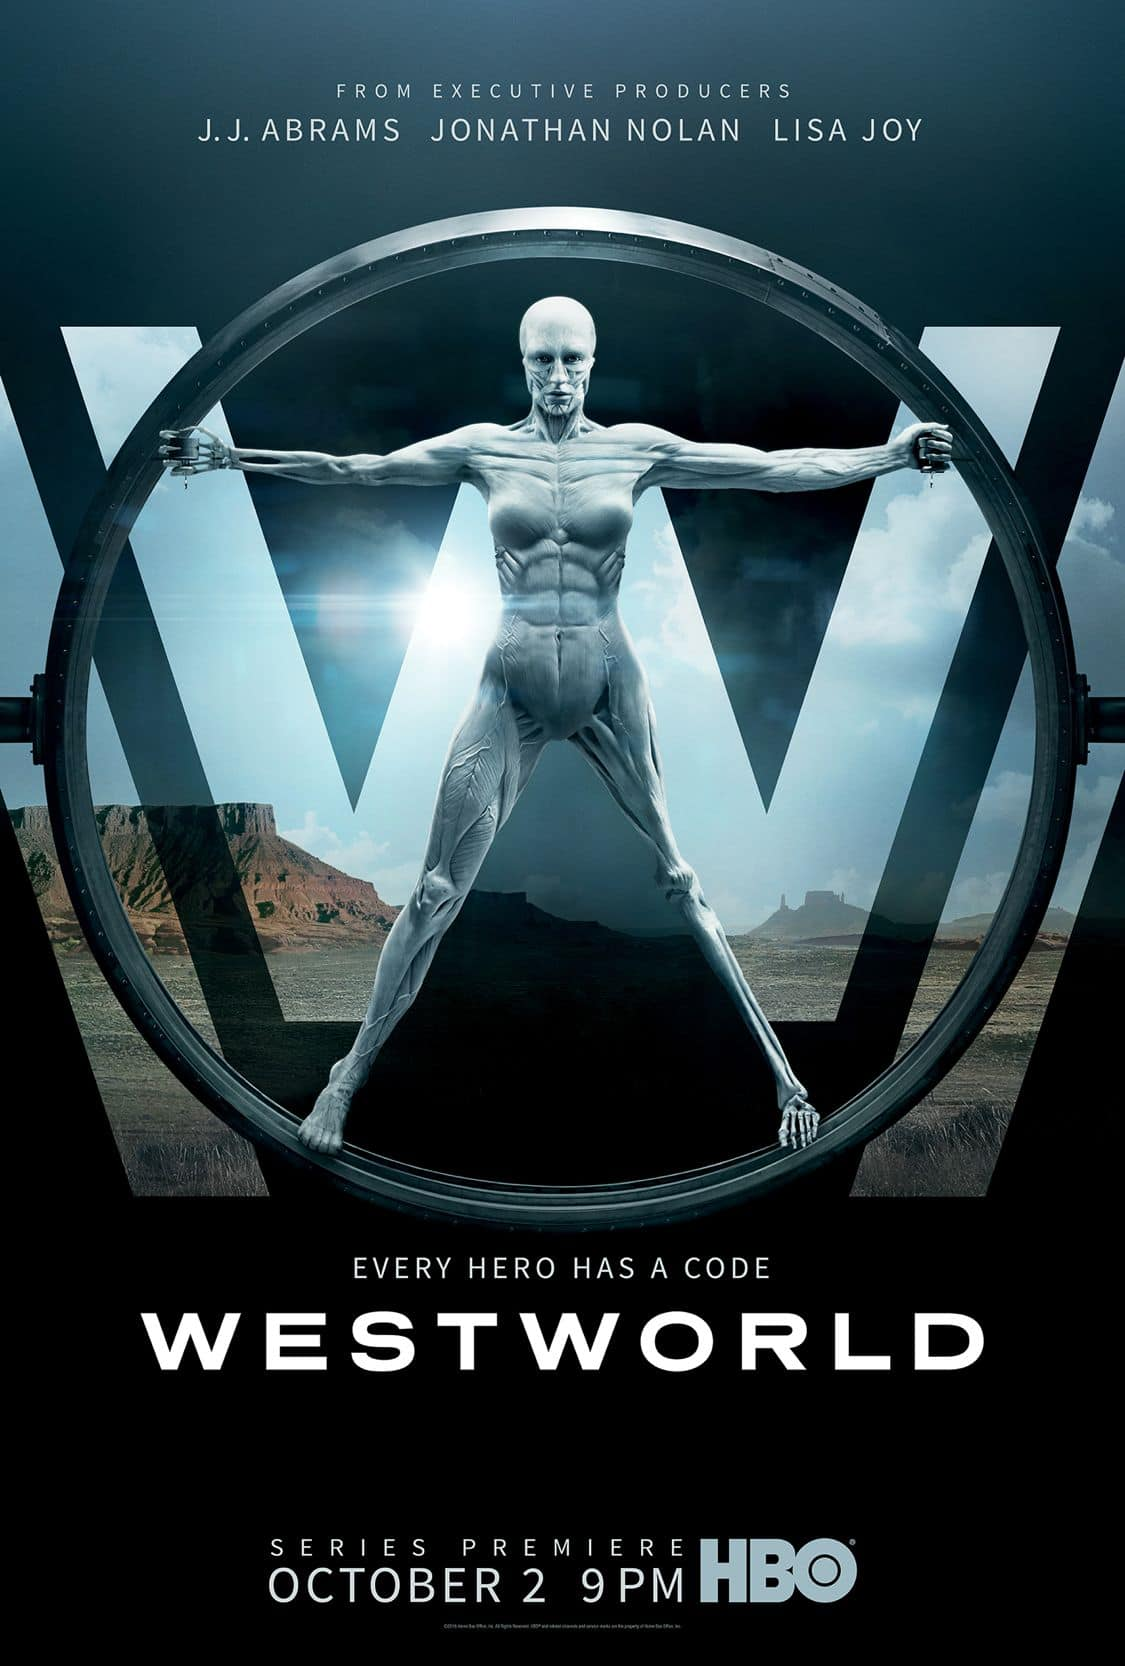 WESTWORLD Season 1 Poster Key Art HBO